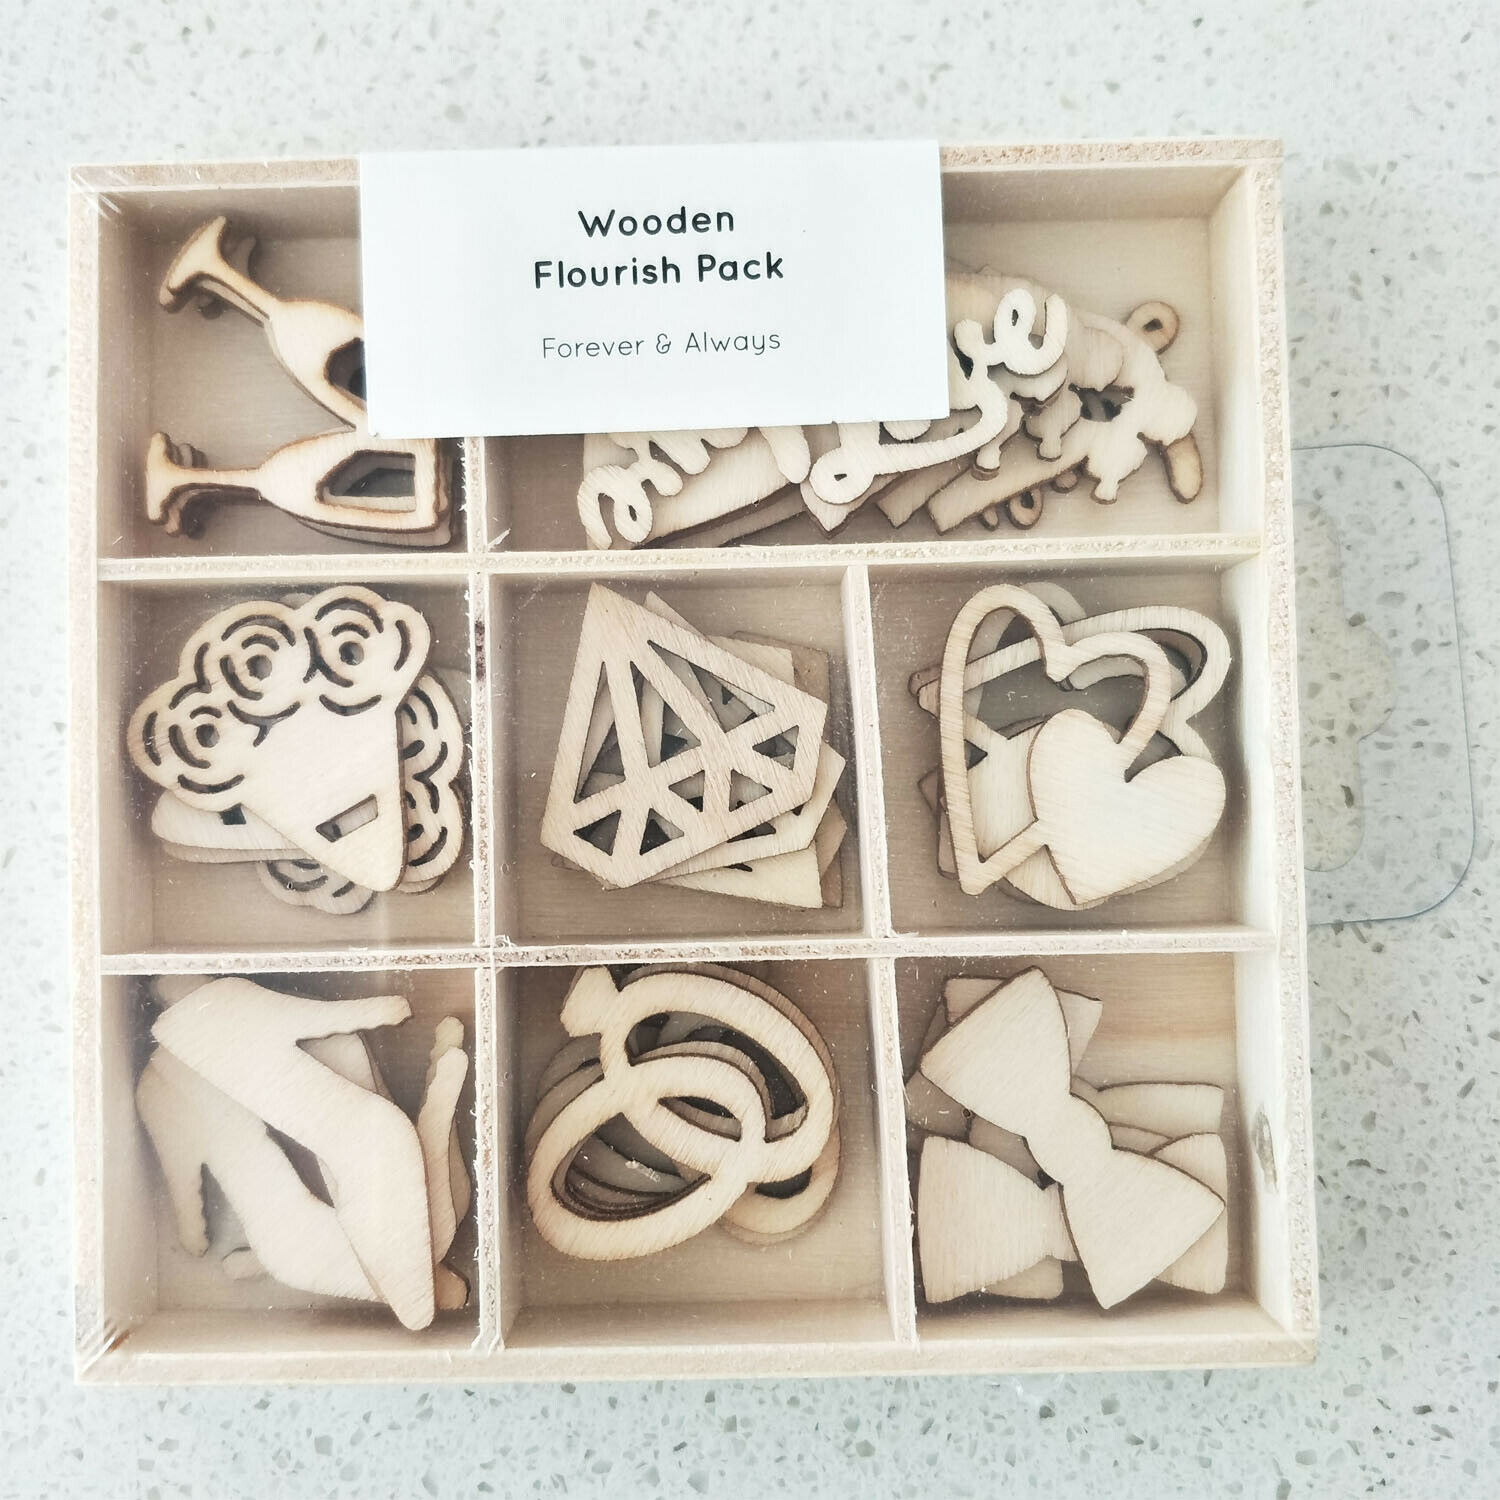 Kaisercraft Wooden Flourish packs / storage box 74 selections - Forever $ Always